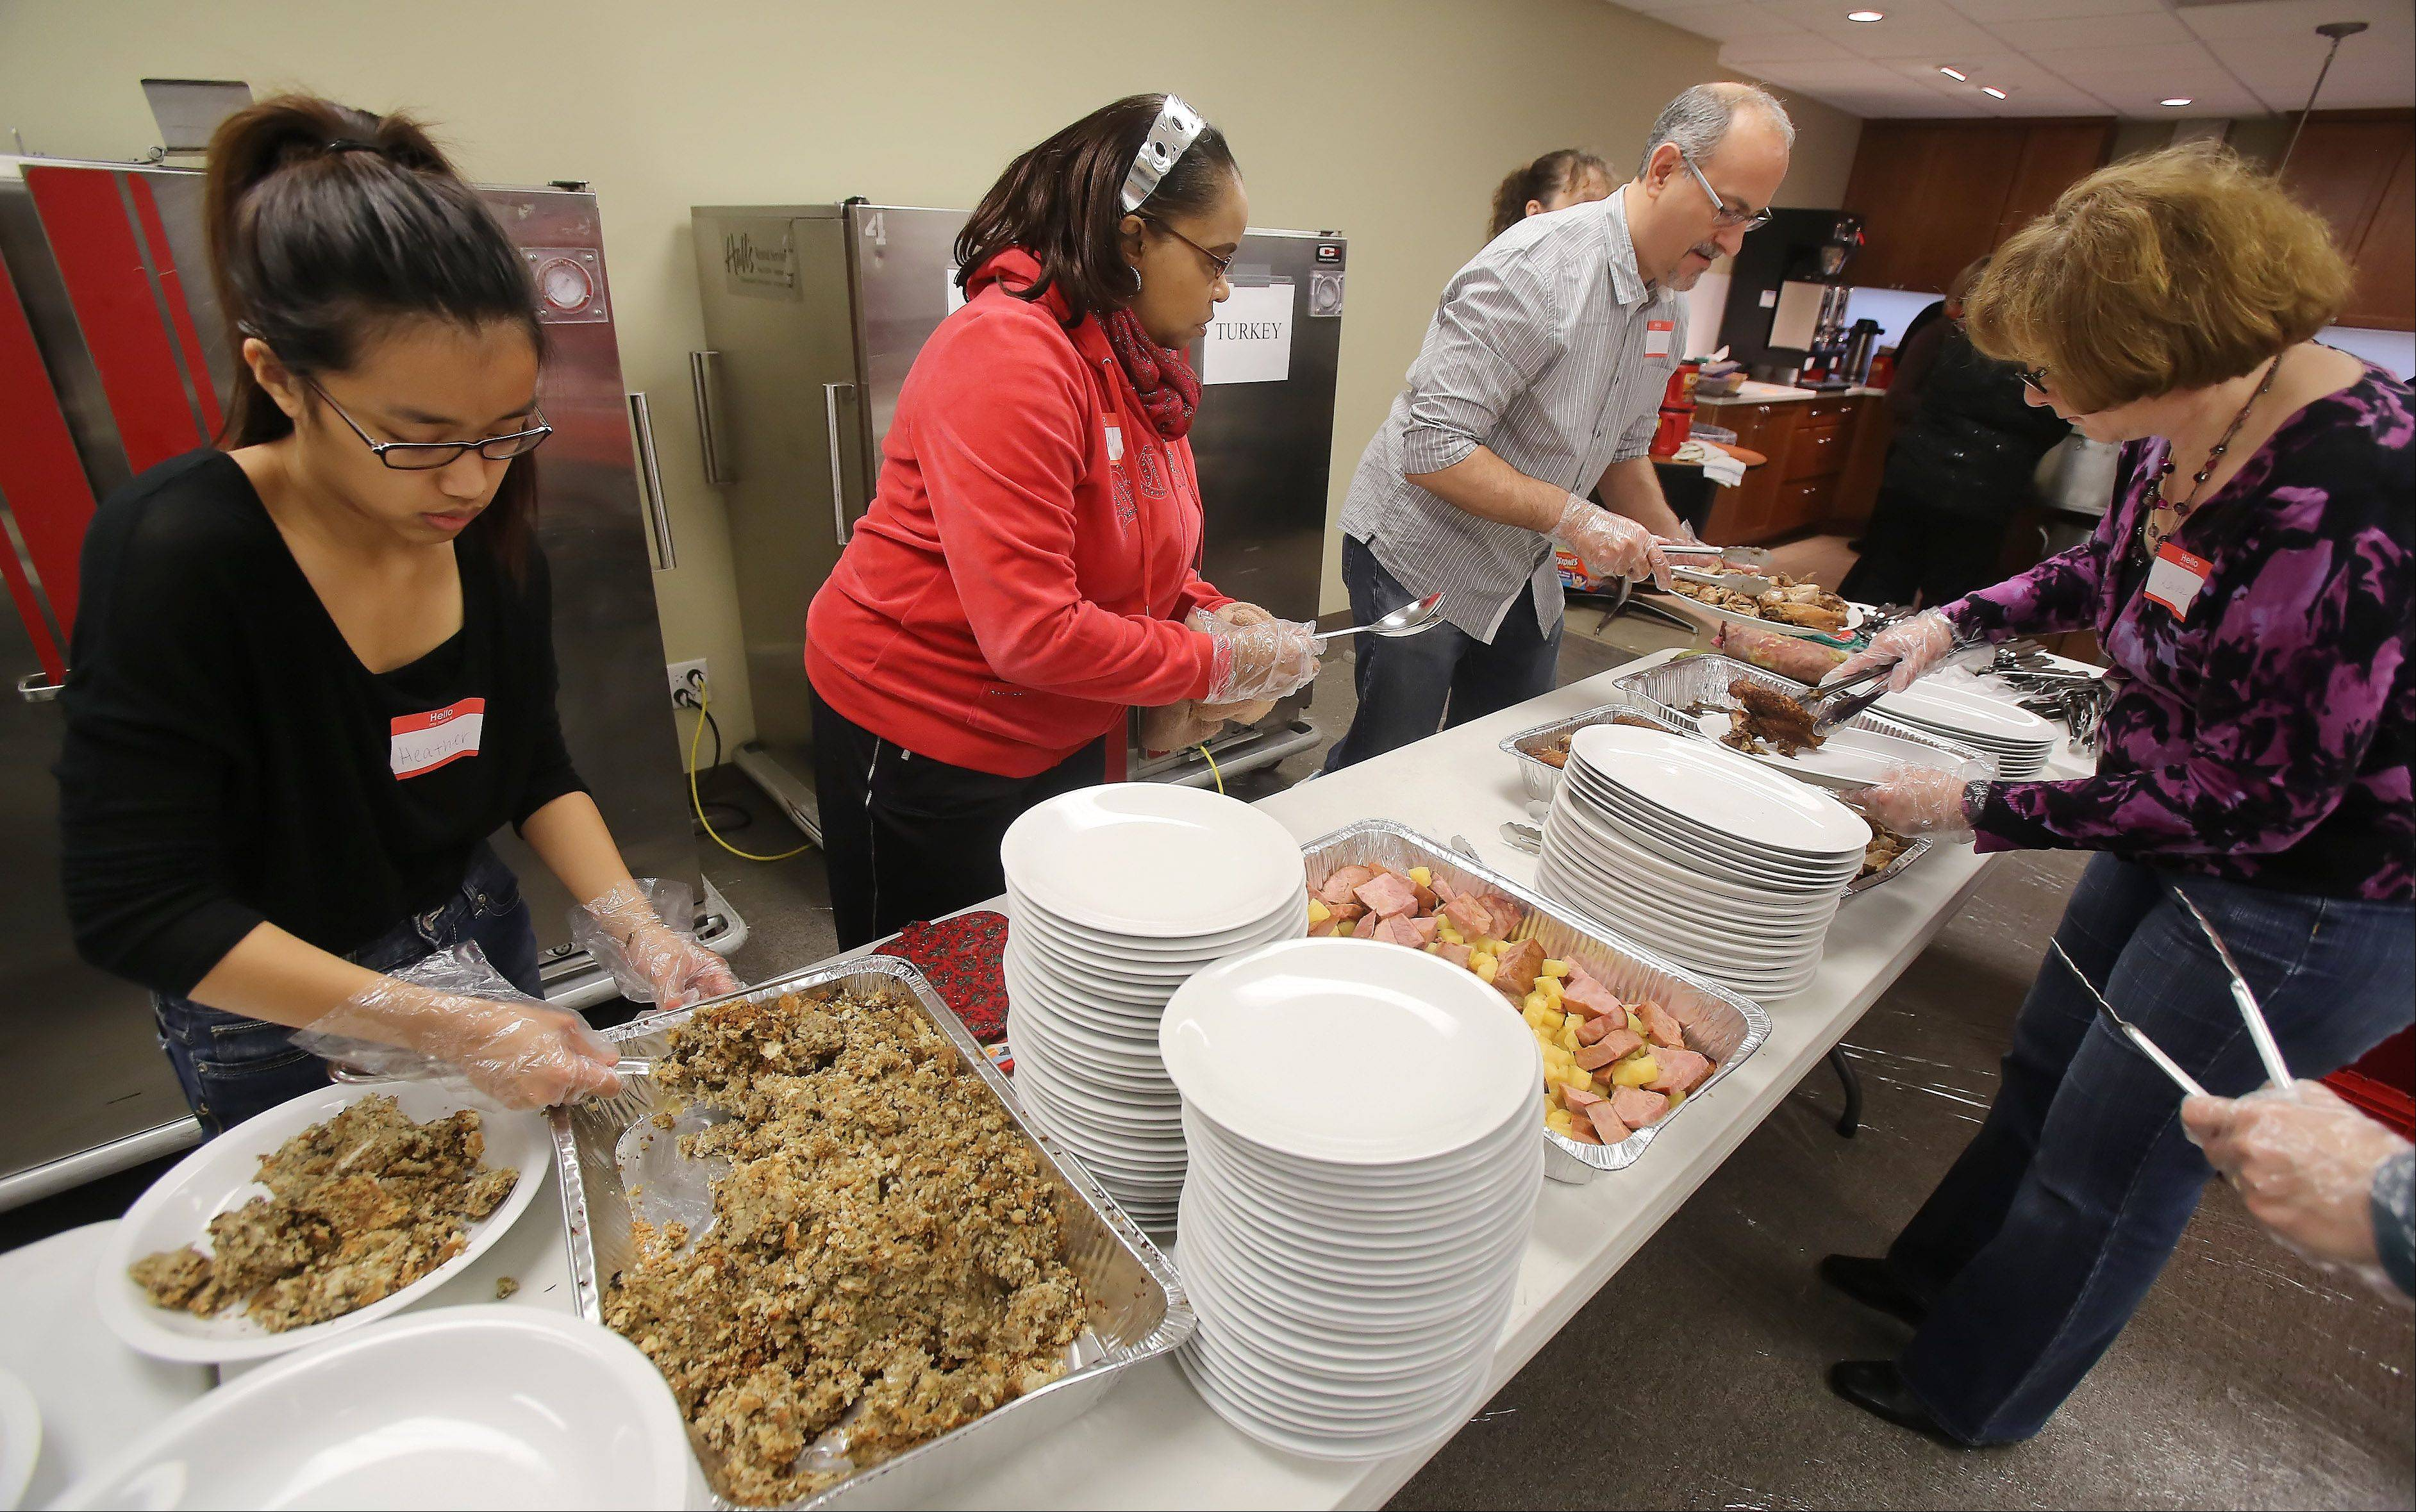 Volunteers dish up platters for the annual free Thanksgiving dinner at the Gurnee Community Church.